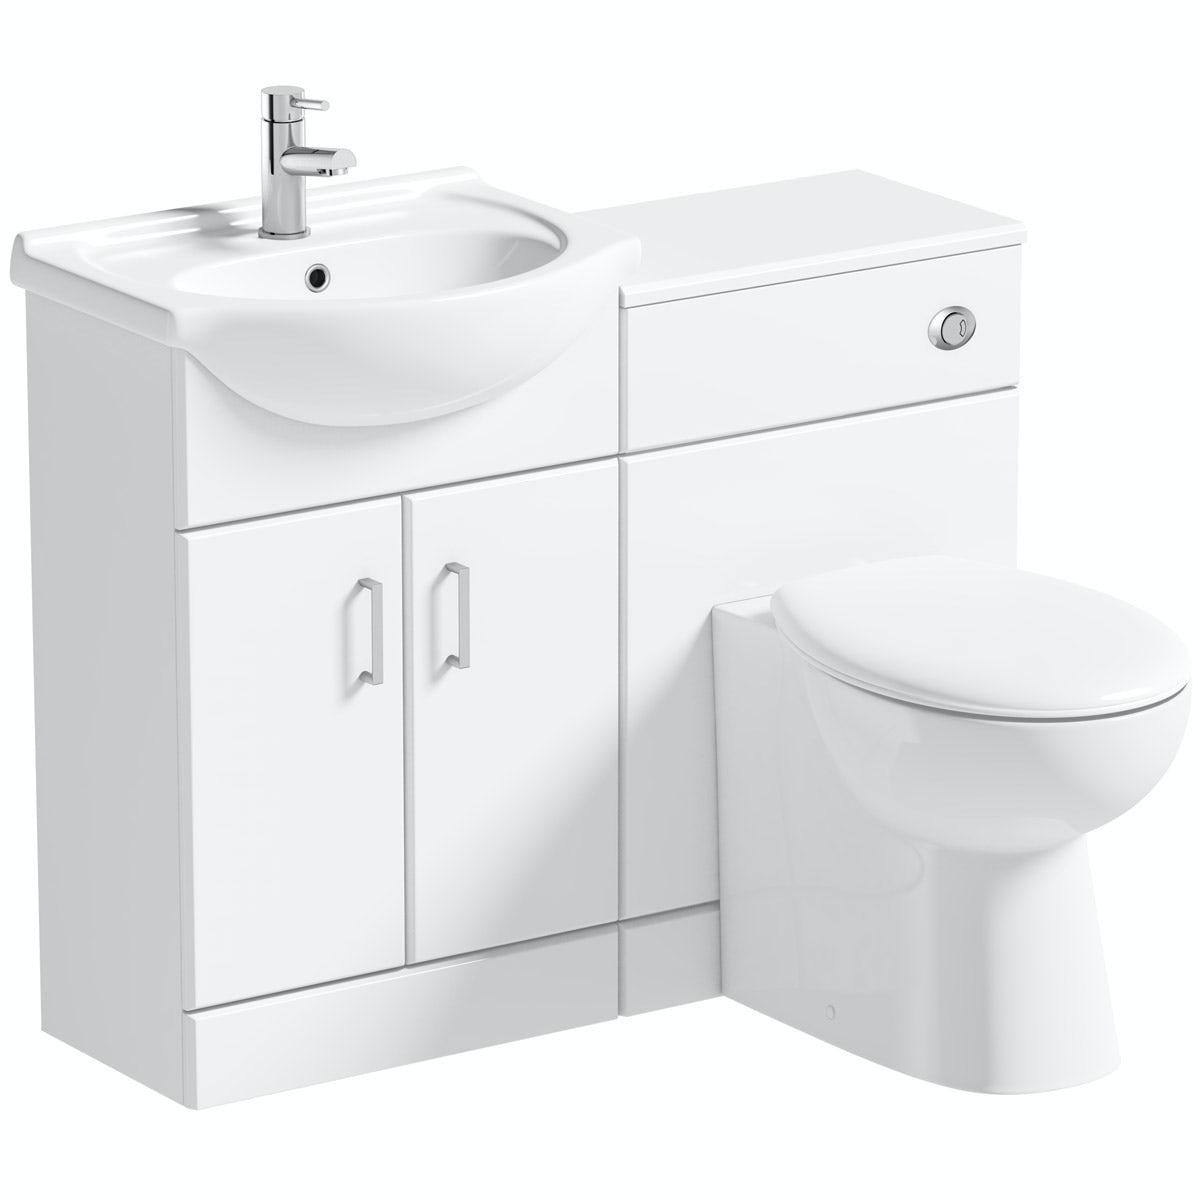 Orchard Eden White 1060mm Combination With Clarity Back To